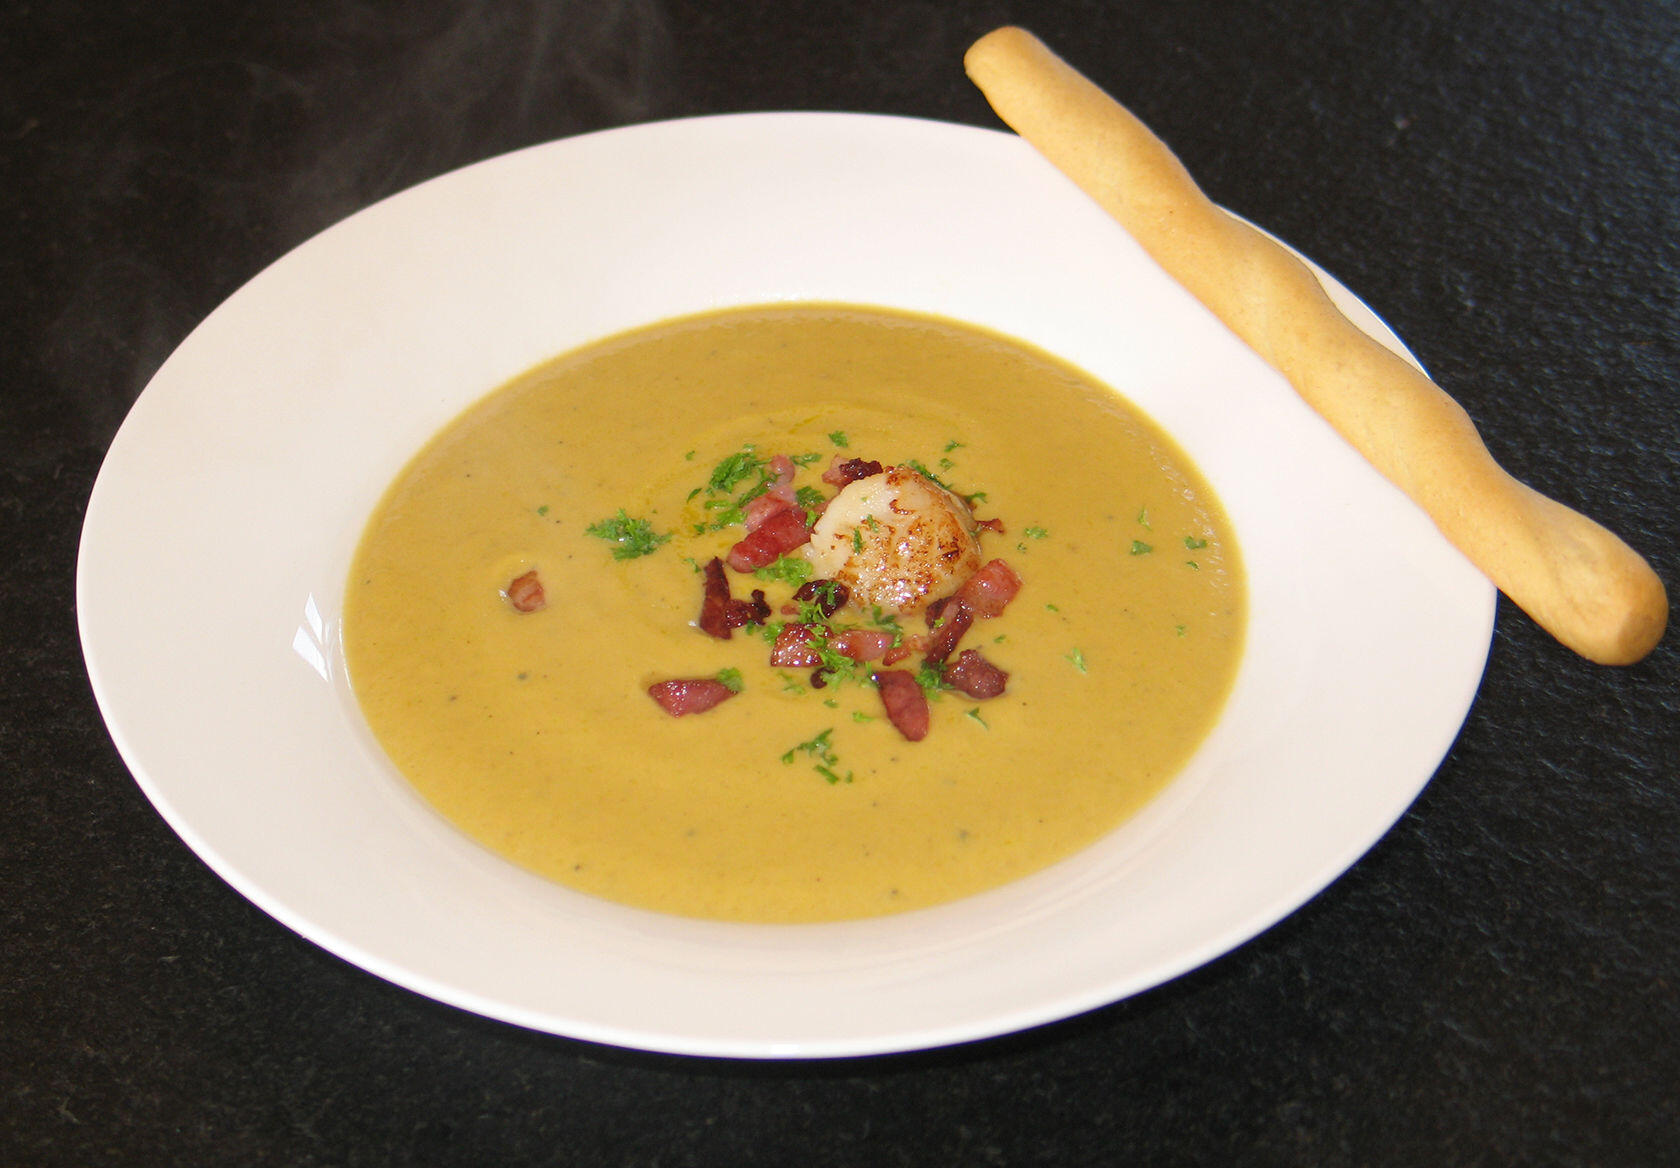 Butternut Squash Soup with Pan-Fried Scallop @Masdaugustine